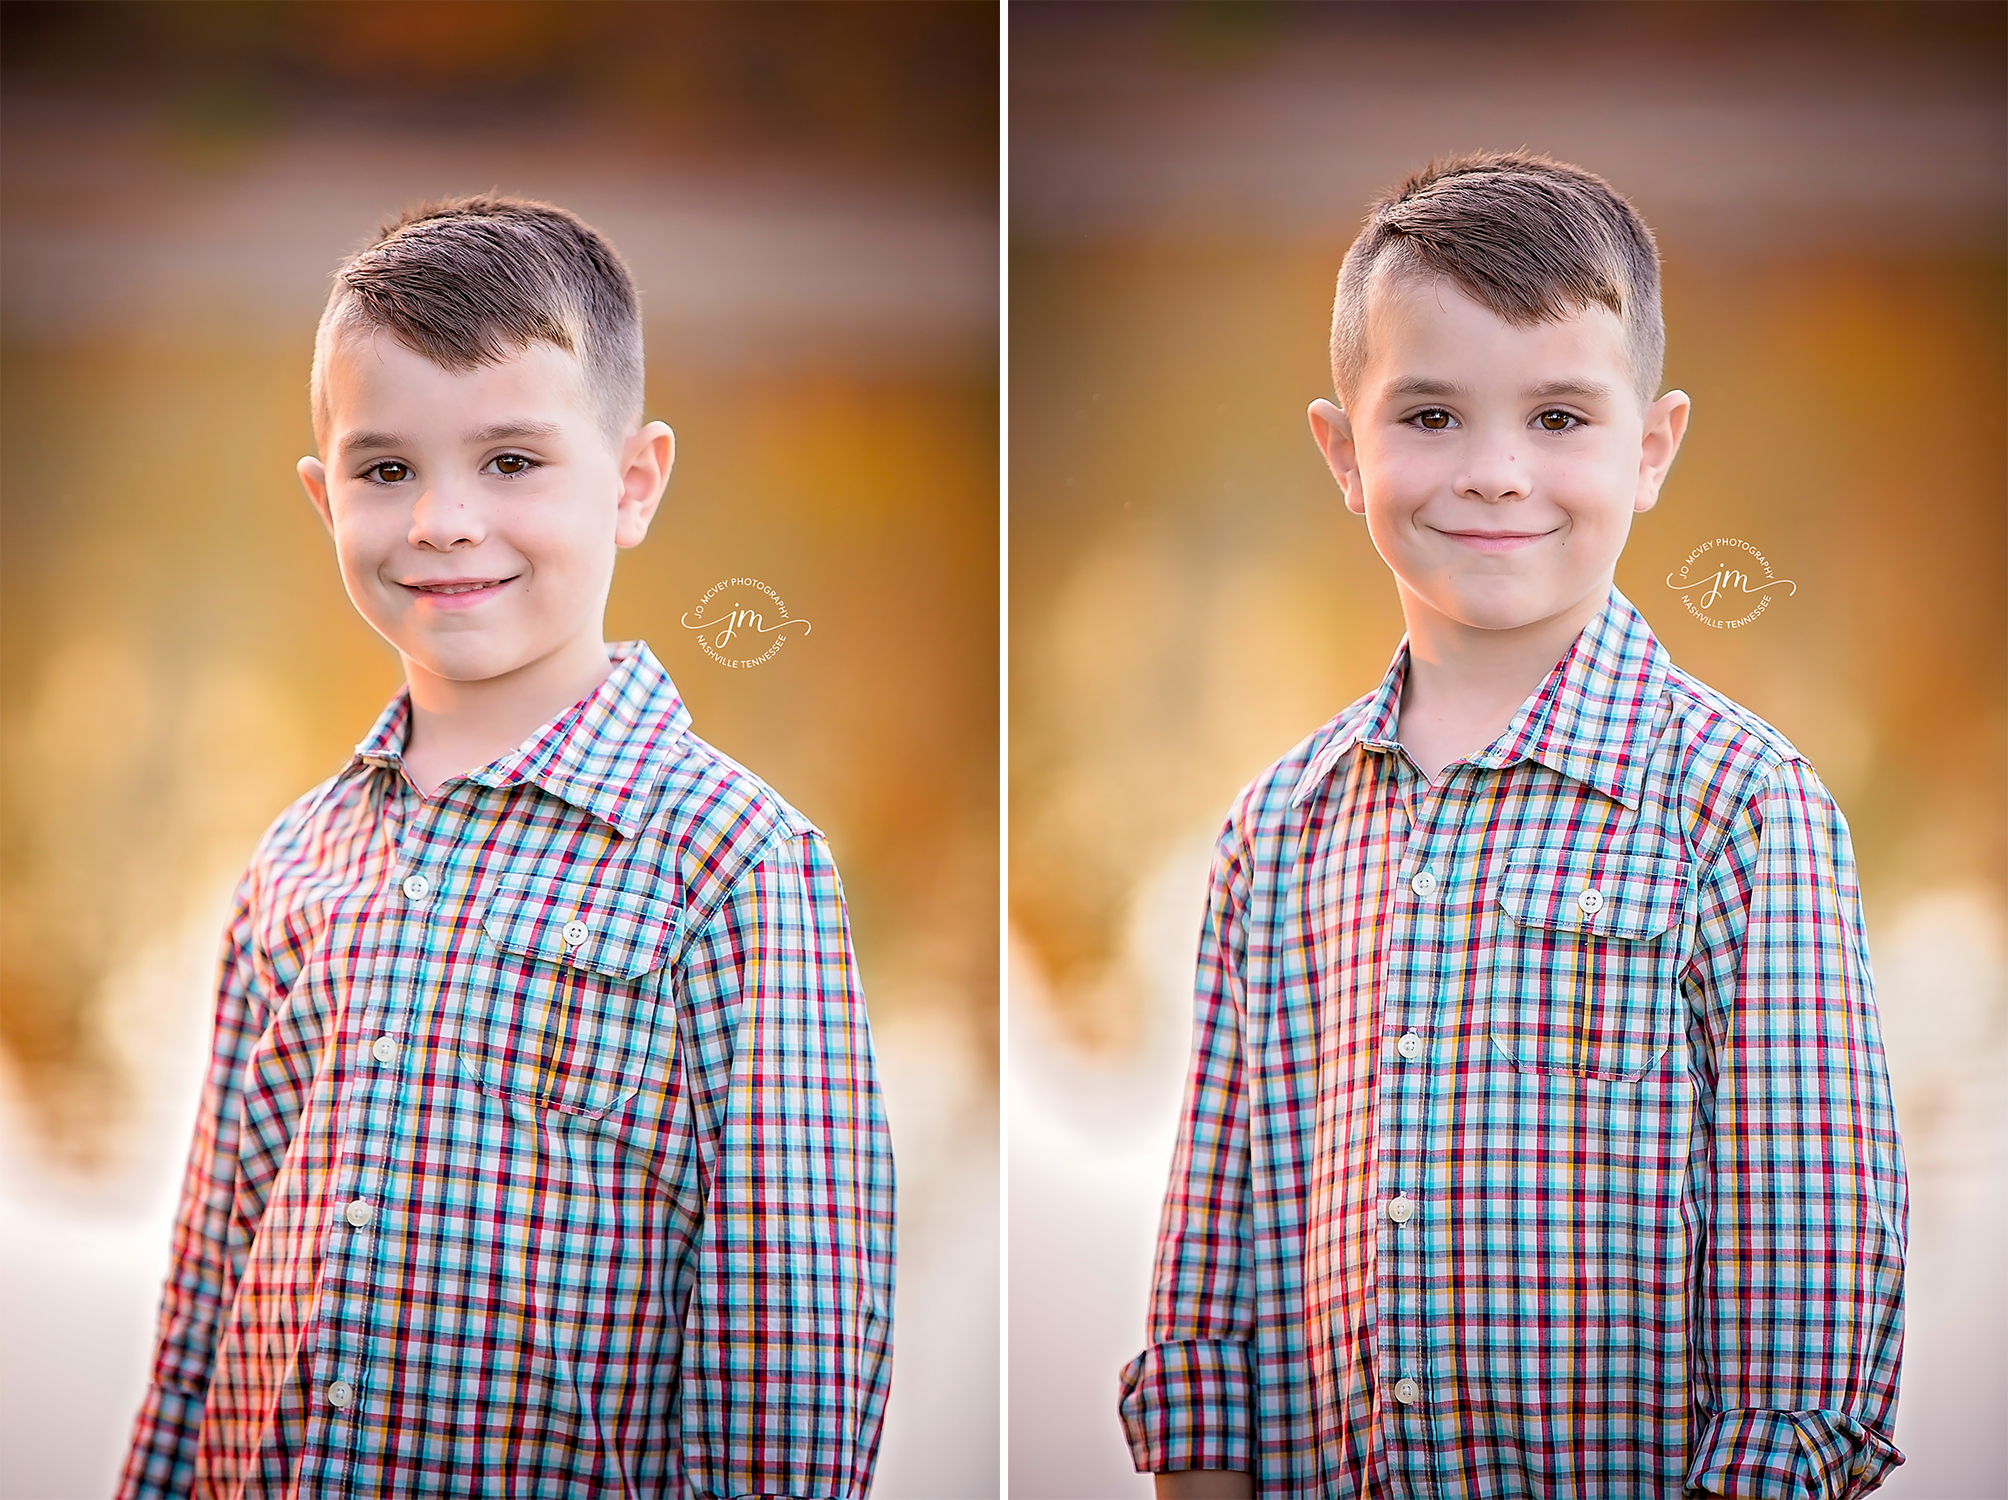 Little boy autumn headshot - Nashville Child Photographer | Jo McVey Photography